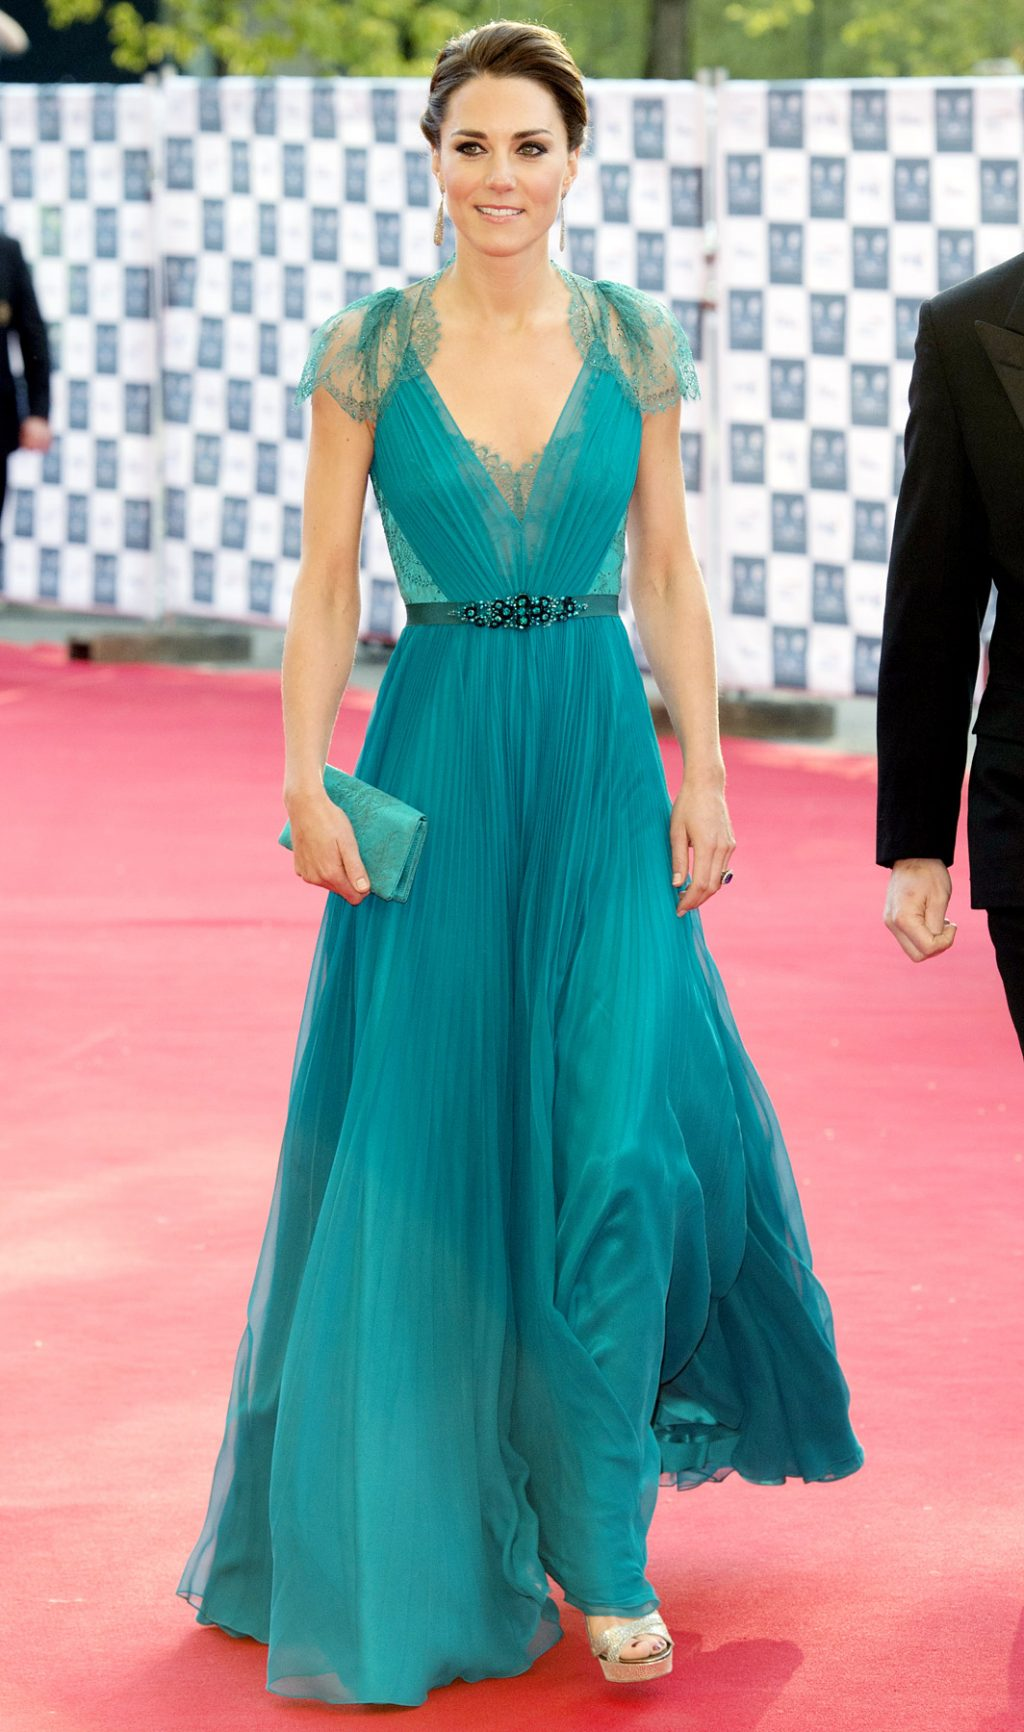 Kate Middleton Jenny Packham teal gown repeat